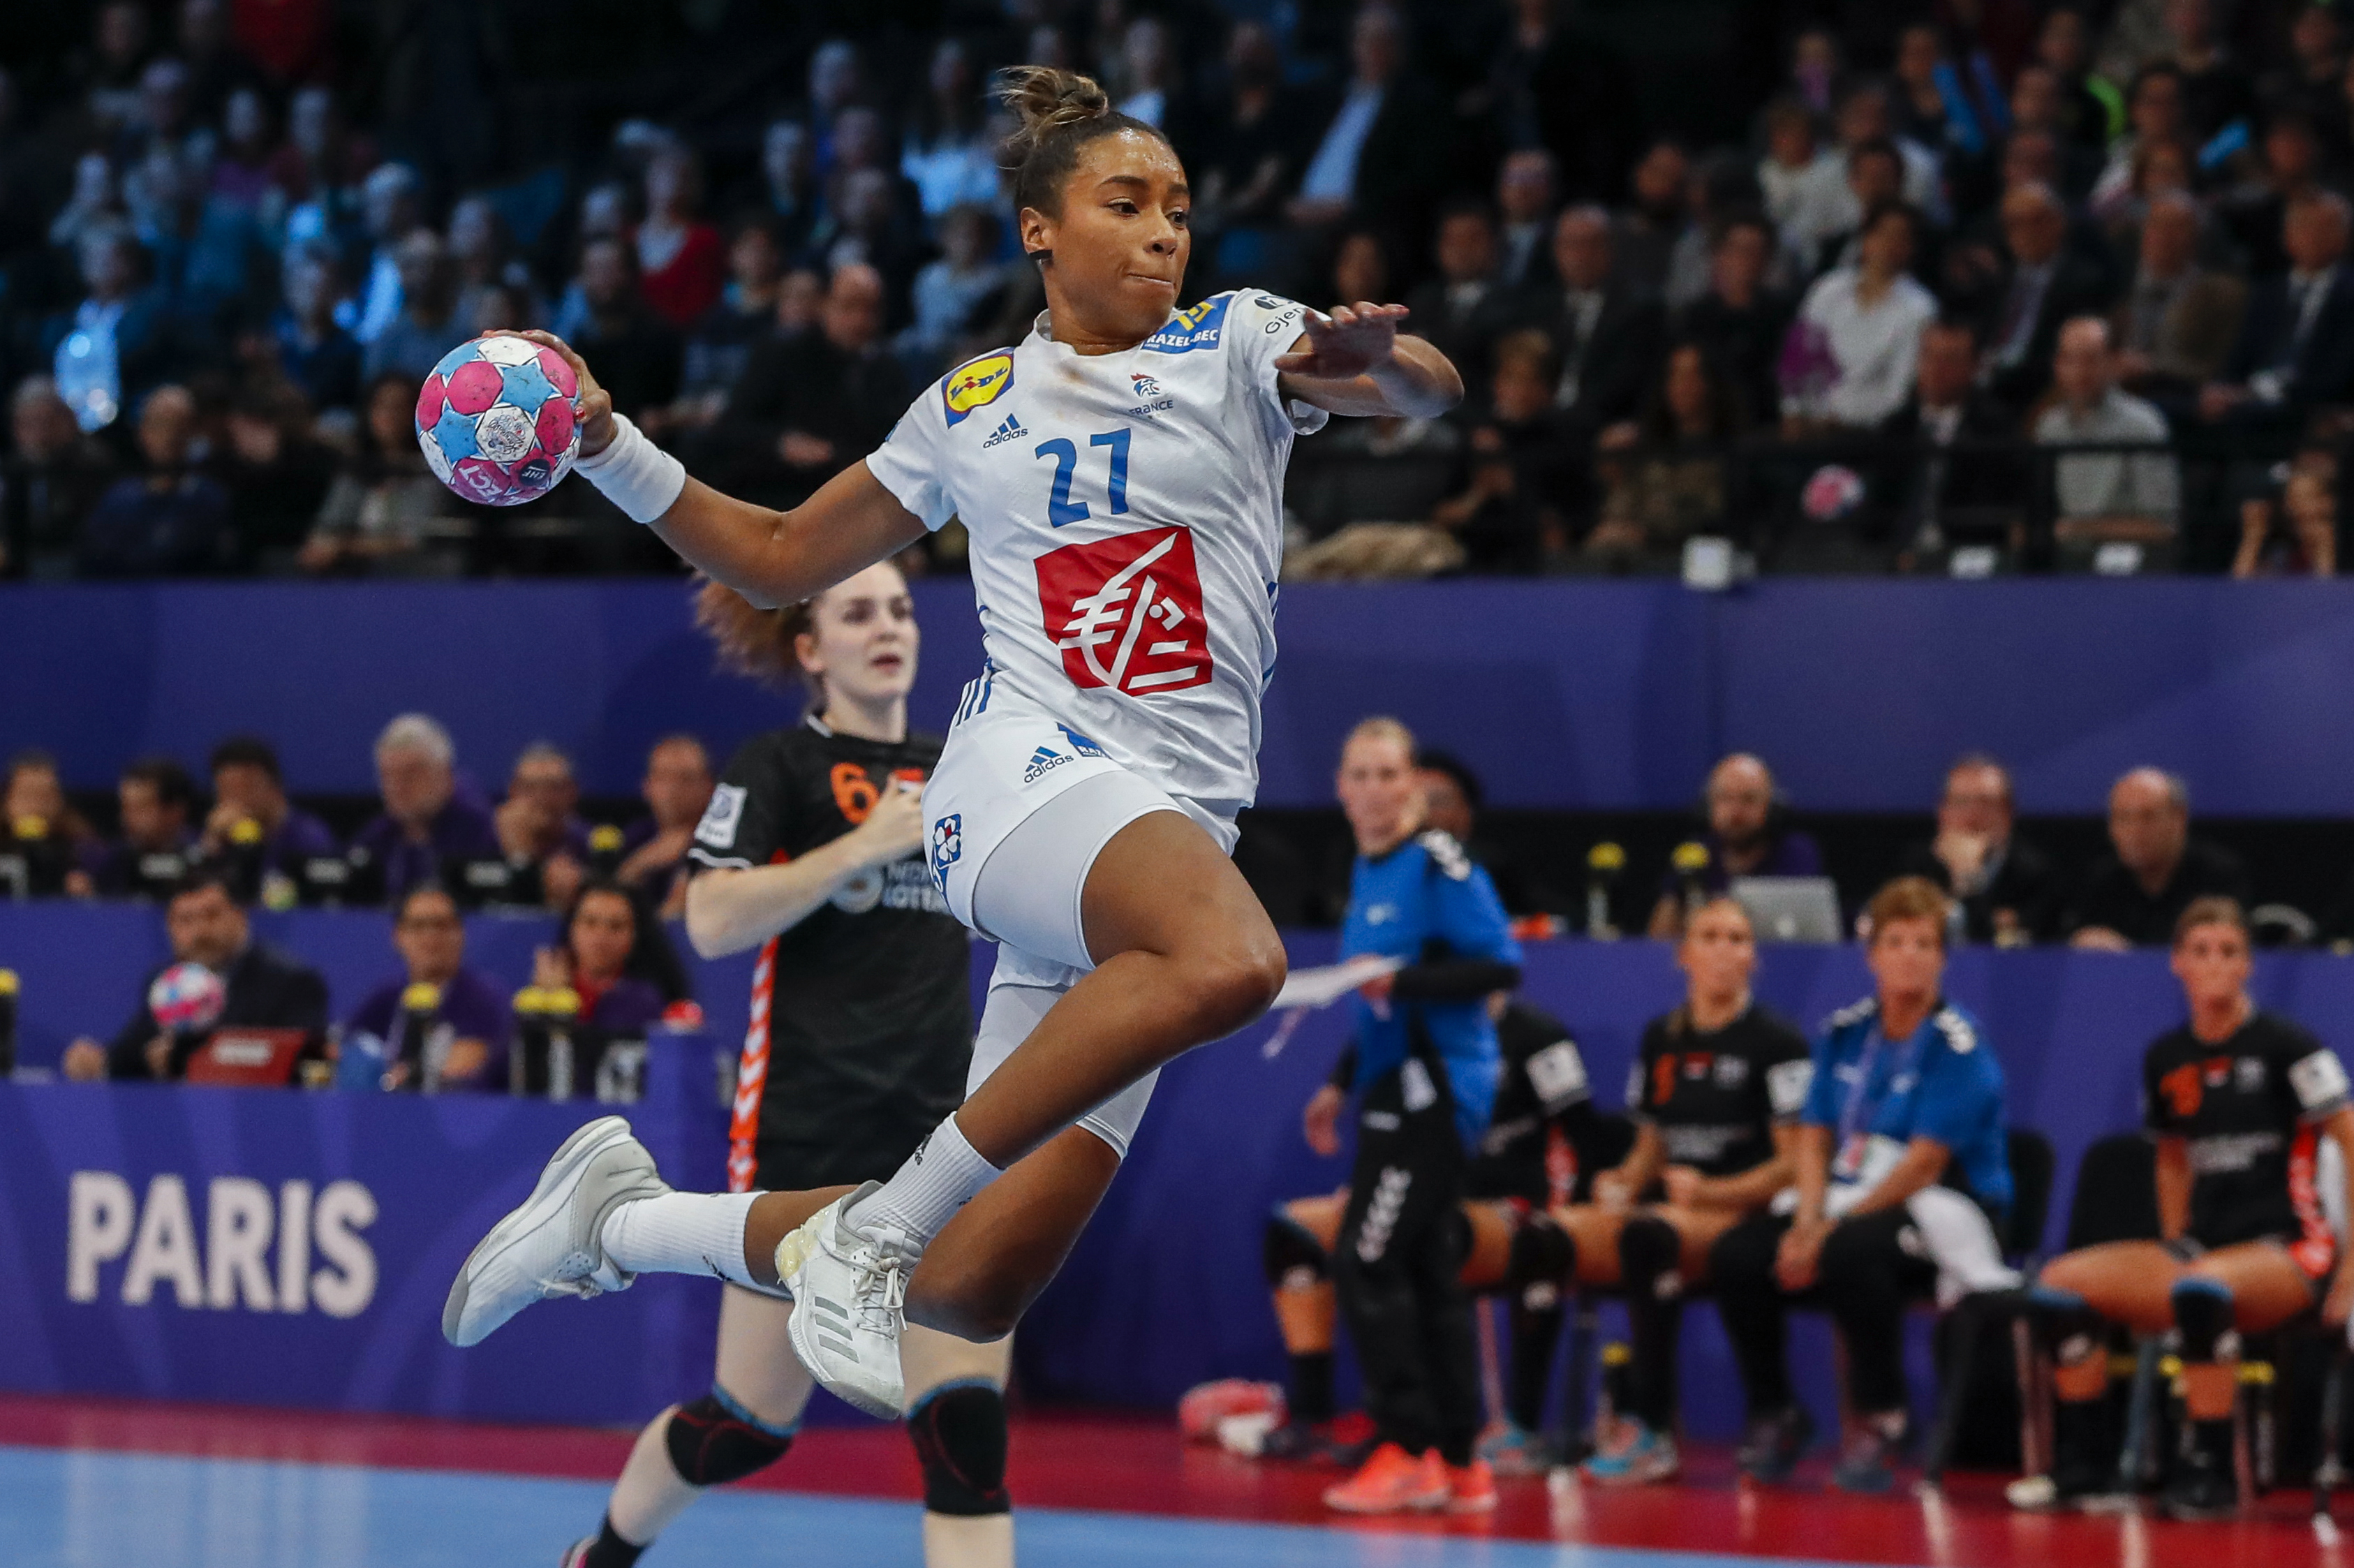 PARIS, FRANCE - DECEMBER 14: Estelle Nze Minko #27 of France is shooting the ball during the EHF Euro semi-final match between Netherlands and France at AccorHotels Arena on December 14, 2018 in Paris, France. (Photo by Catherine Steenkeste/Getty Images)